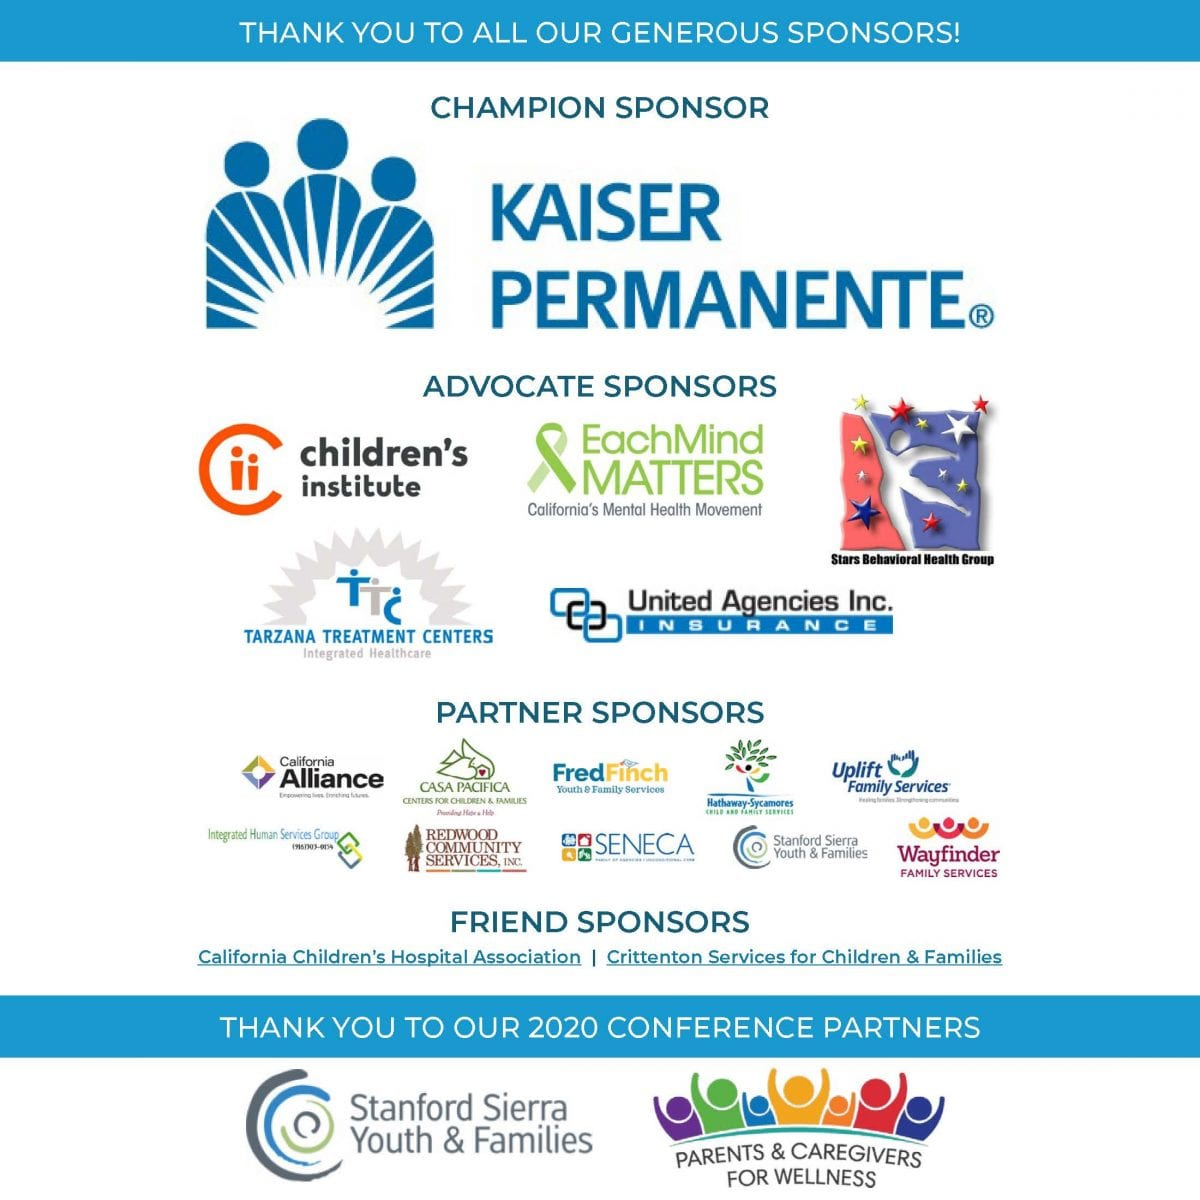 Thanks to all our generous sponsors!